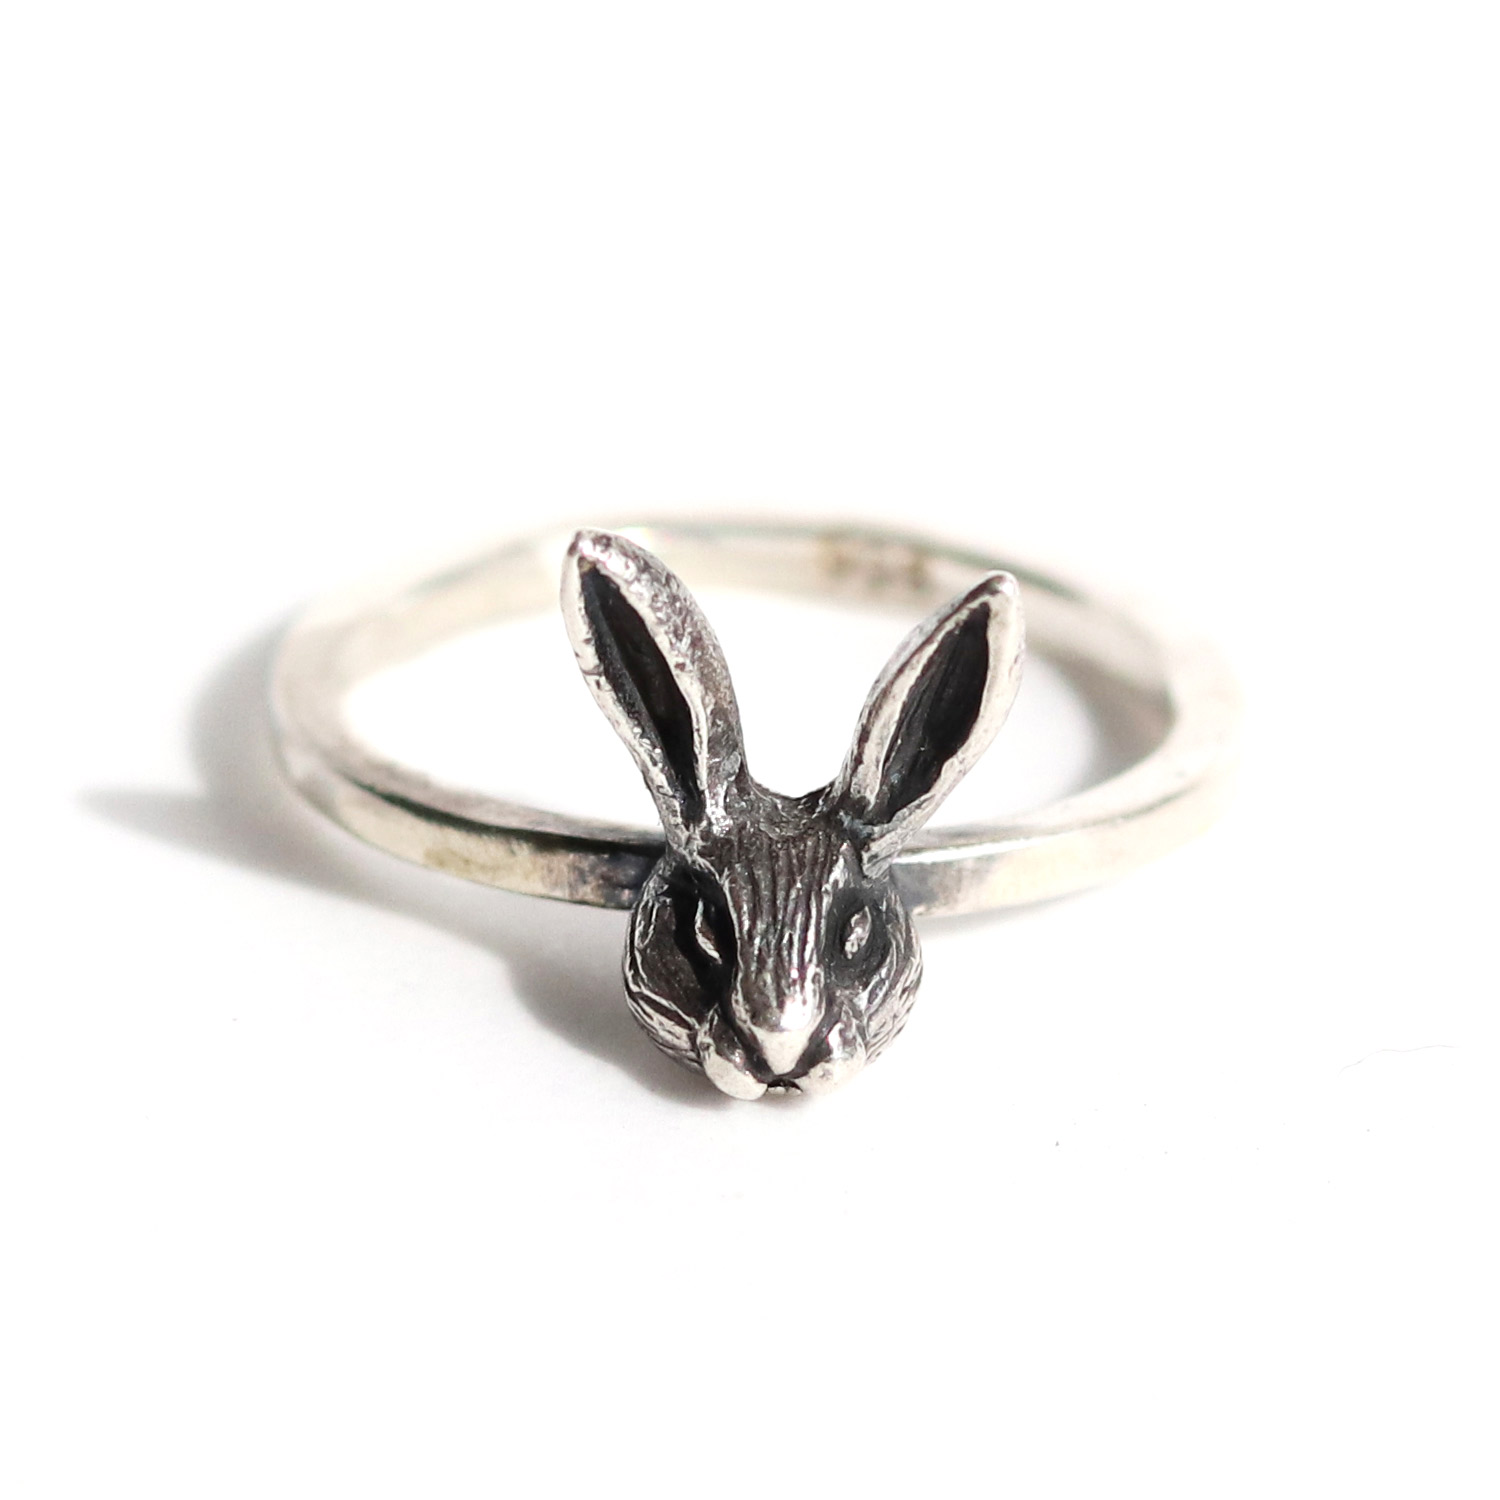 Fudge the rabbit is inspired by my own pet bunny Fudge. The original was painstakingly hand carved from wax to resemble Fudge as closely as possible, then cast into sterling silver.  Thisadorable ringispart of the 'Fudge the Rabbit' Collection, where 10 % goes to The Cape Town Bunny Huggers Foundation (find out more by following this link) https://ctbunnyhuggers.wordpress.com/about/.  Kindly state your ring size (in letter size) in the comment section if you don't find your ring size in the options listed.